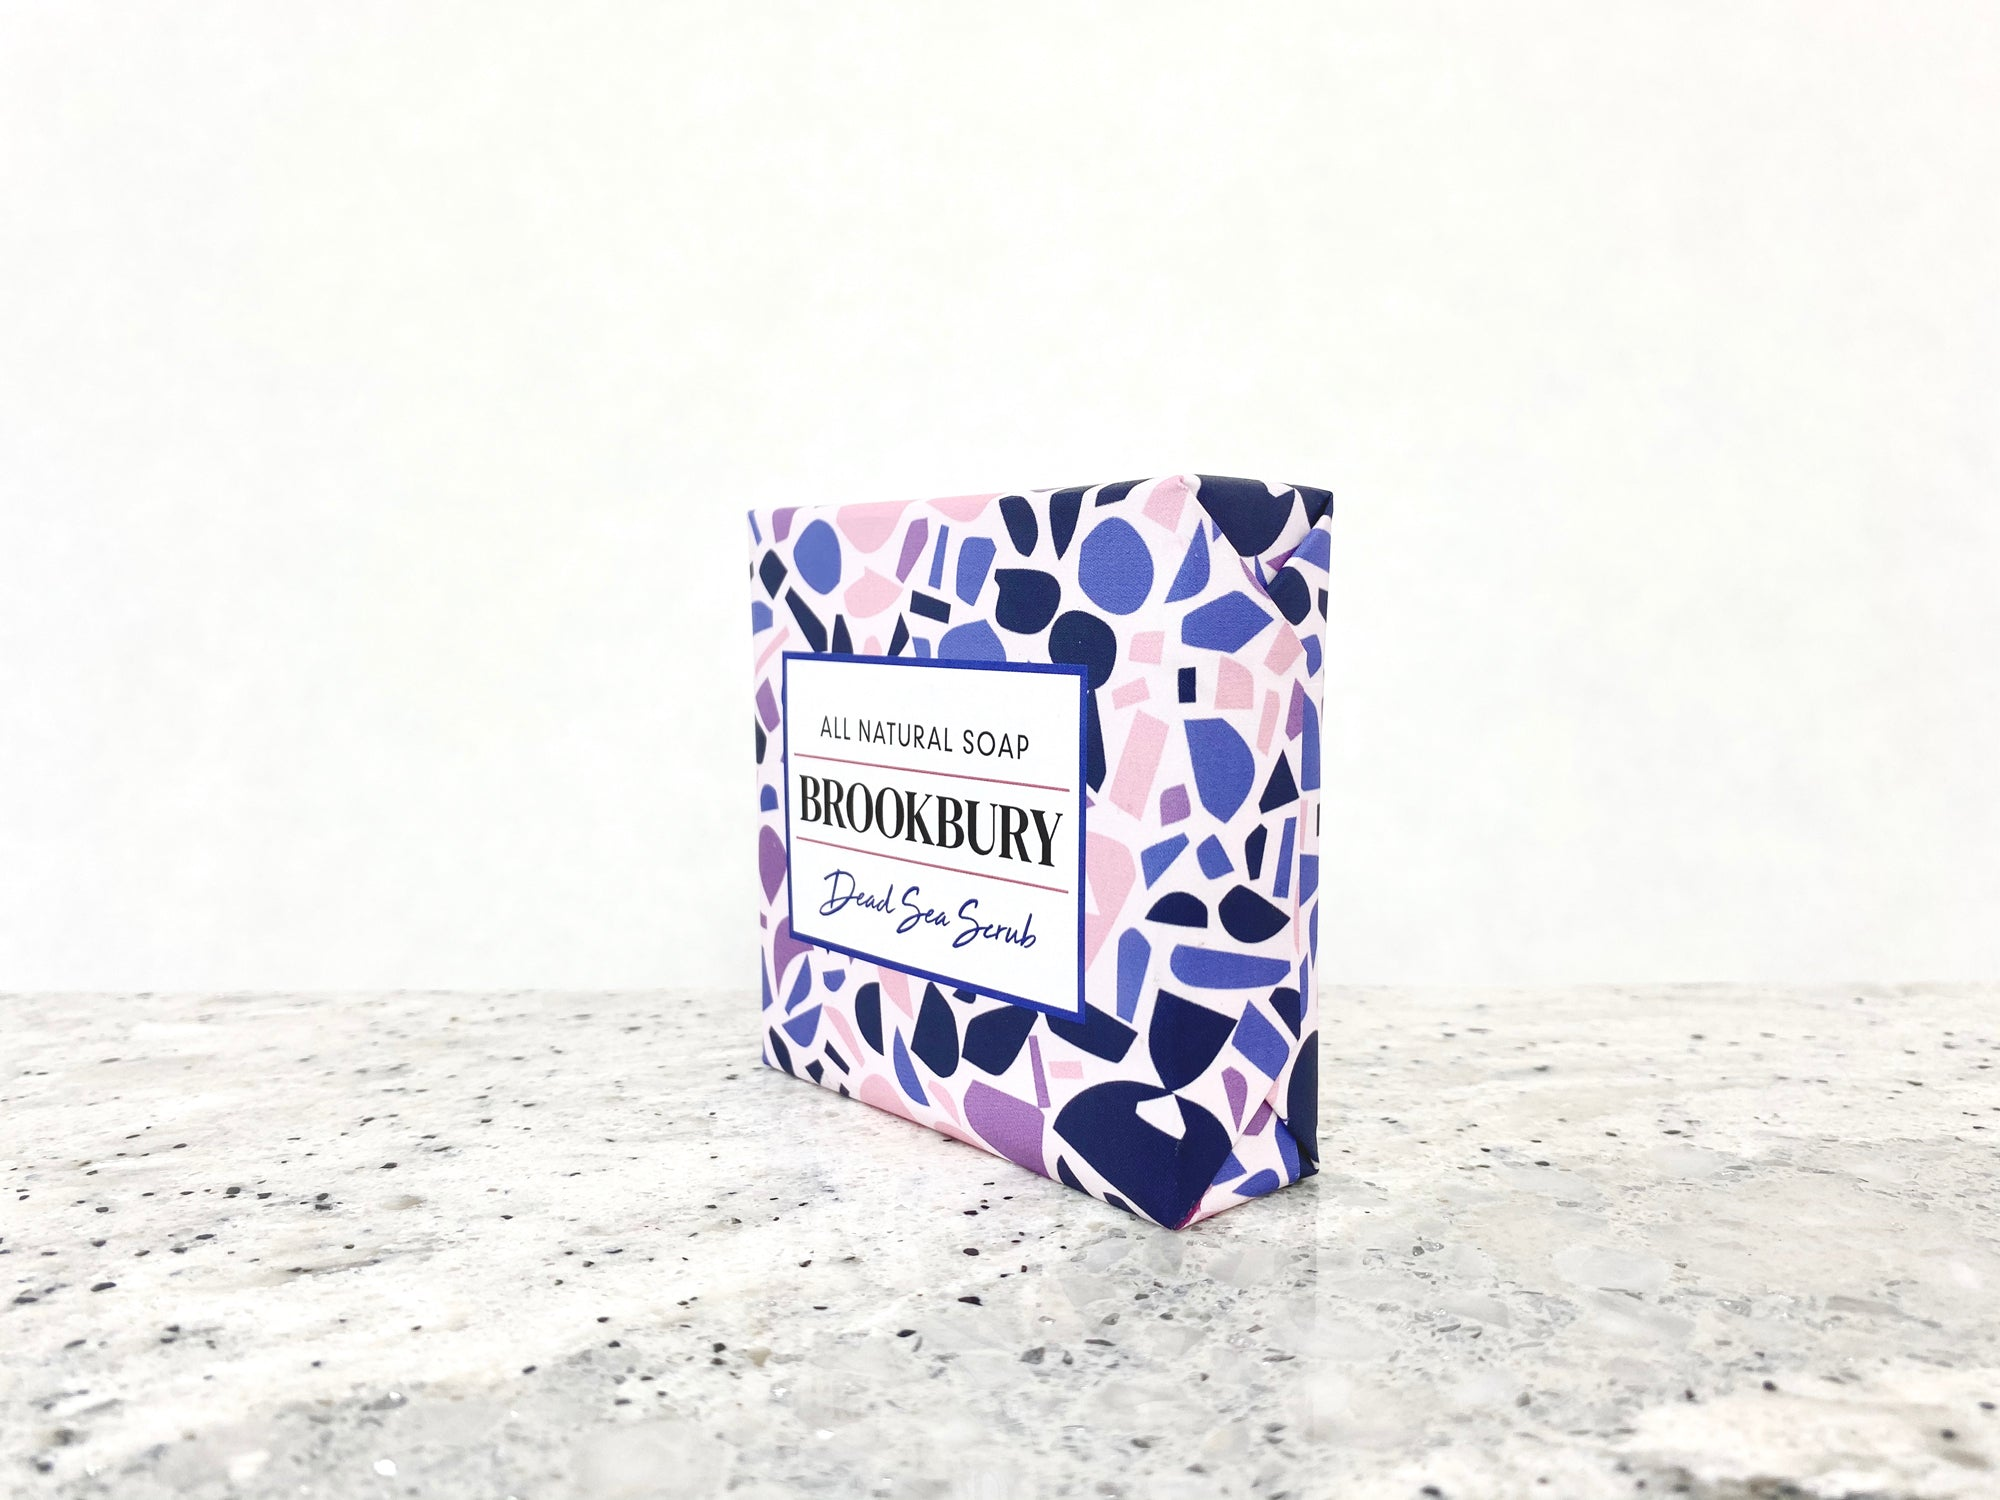 Dead Sea Scrub - Natural Body Soap with activated Charcoal, Sea Salt and Various clays as exfoliant